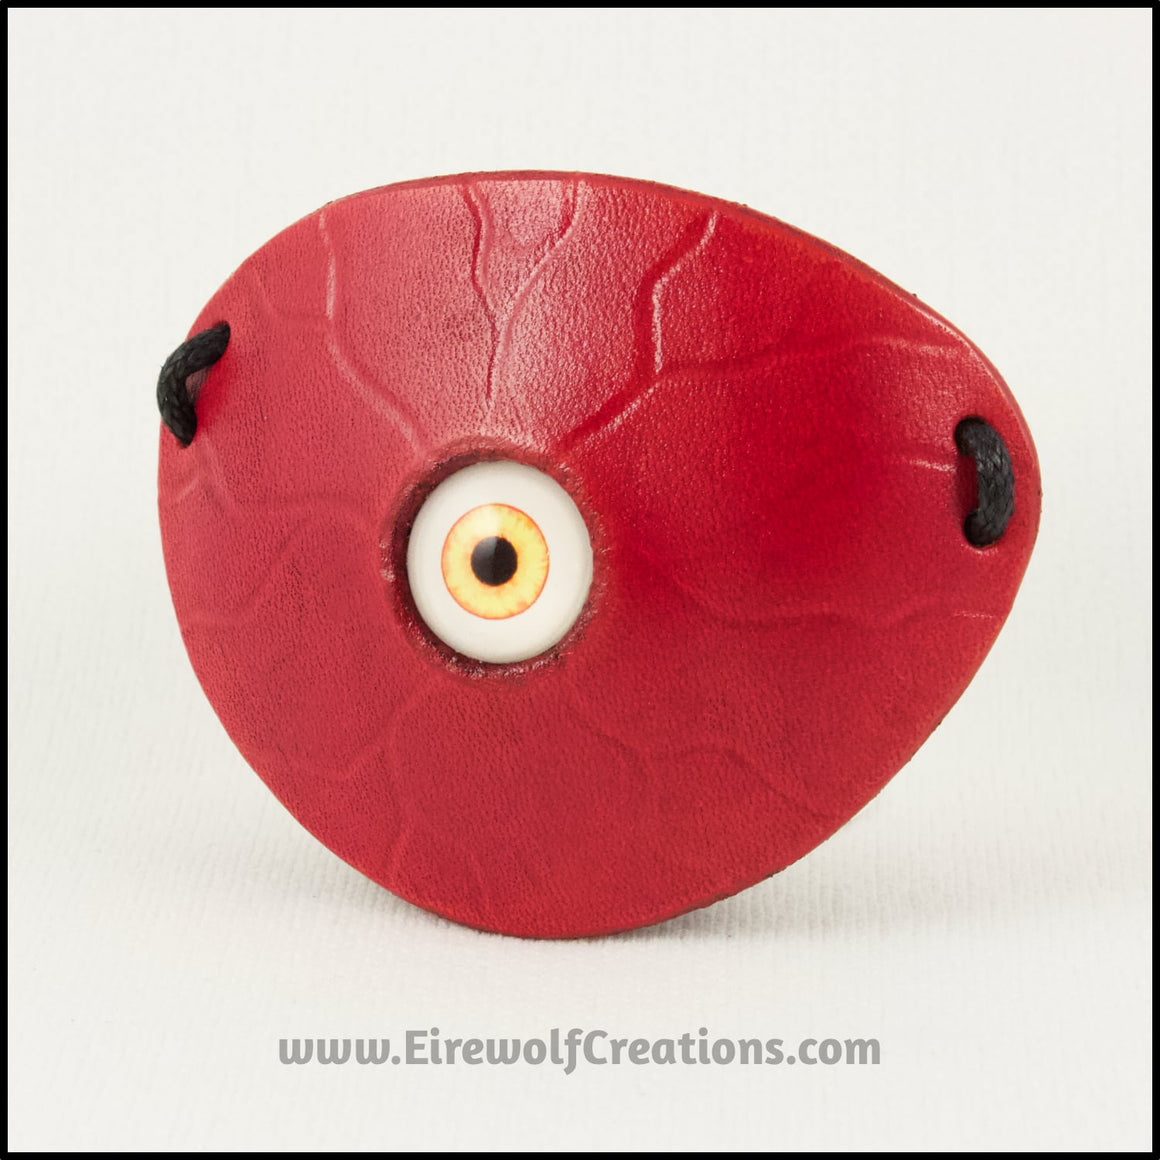 Creepy Yellow Eyeball pirate eye patch red leather handmade masquerade costume larp Halloween